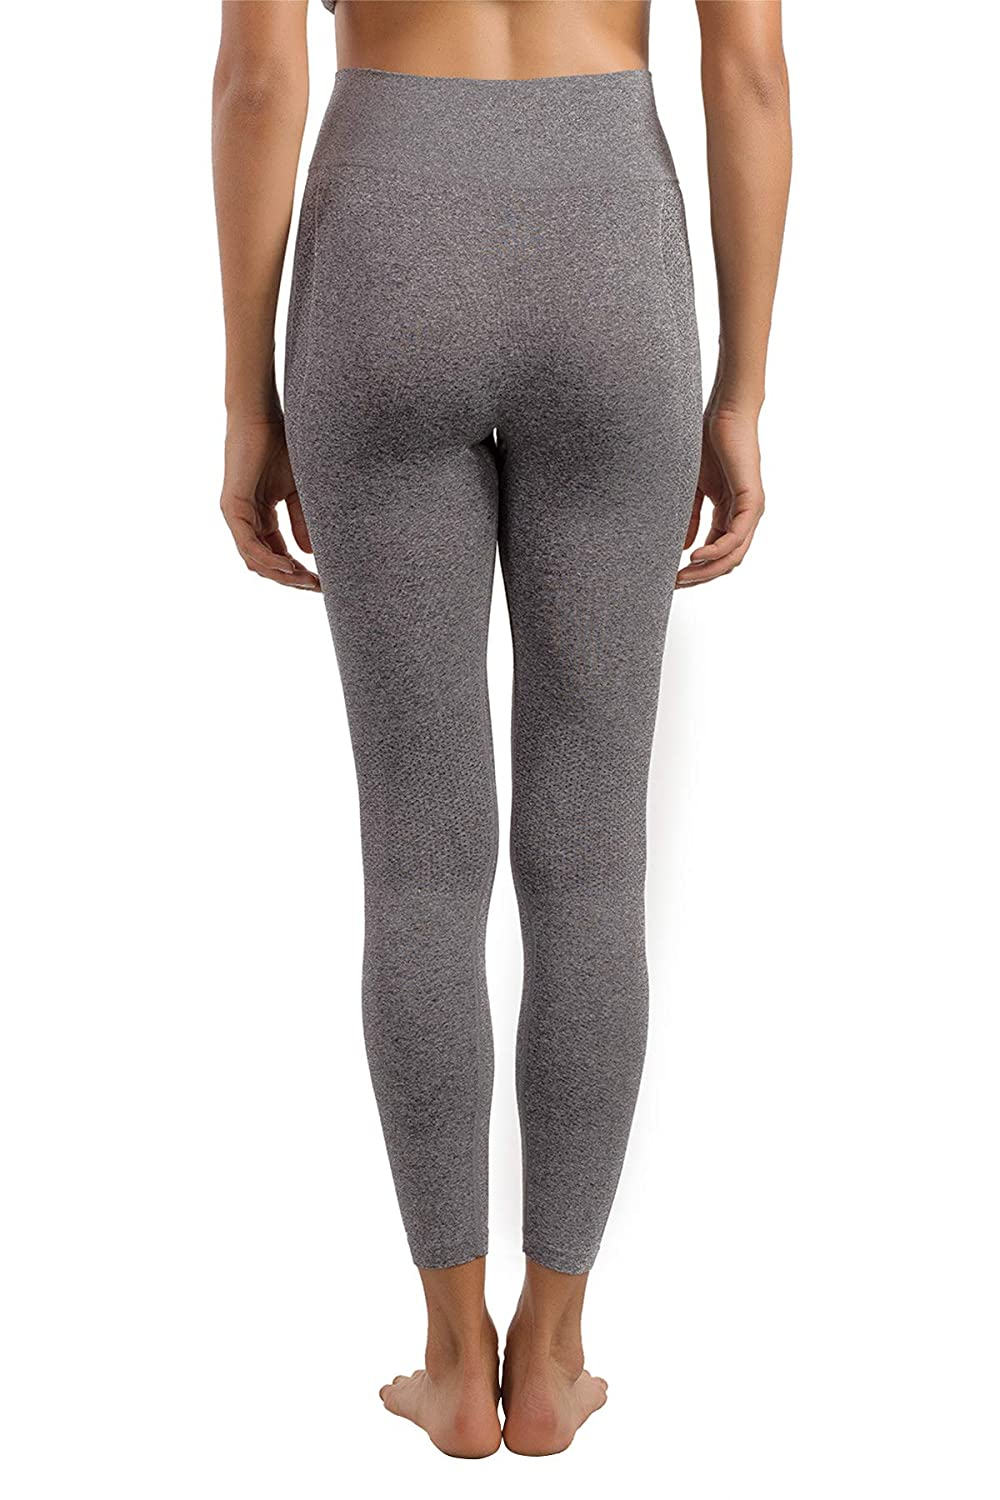 +MD Womens High Waisted Seamless Long Pants Thermal Underwear Bottoms Base Layer Leggings